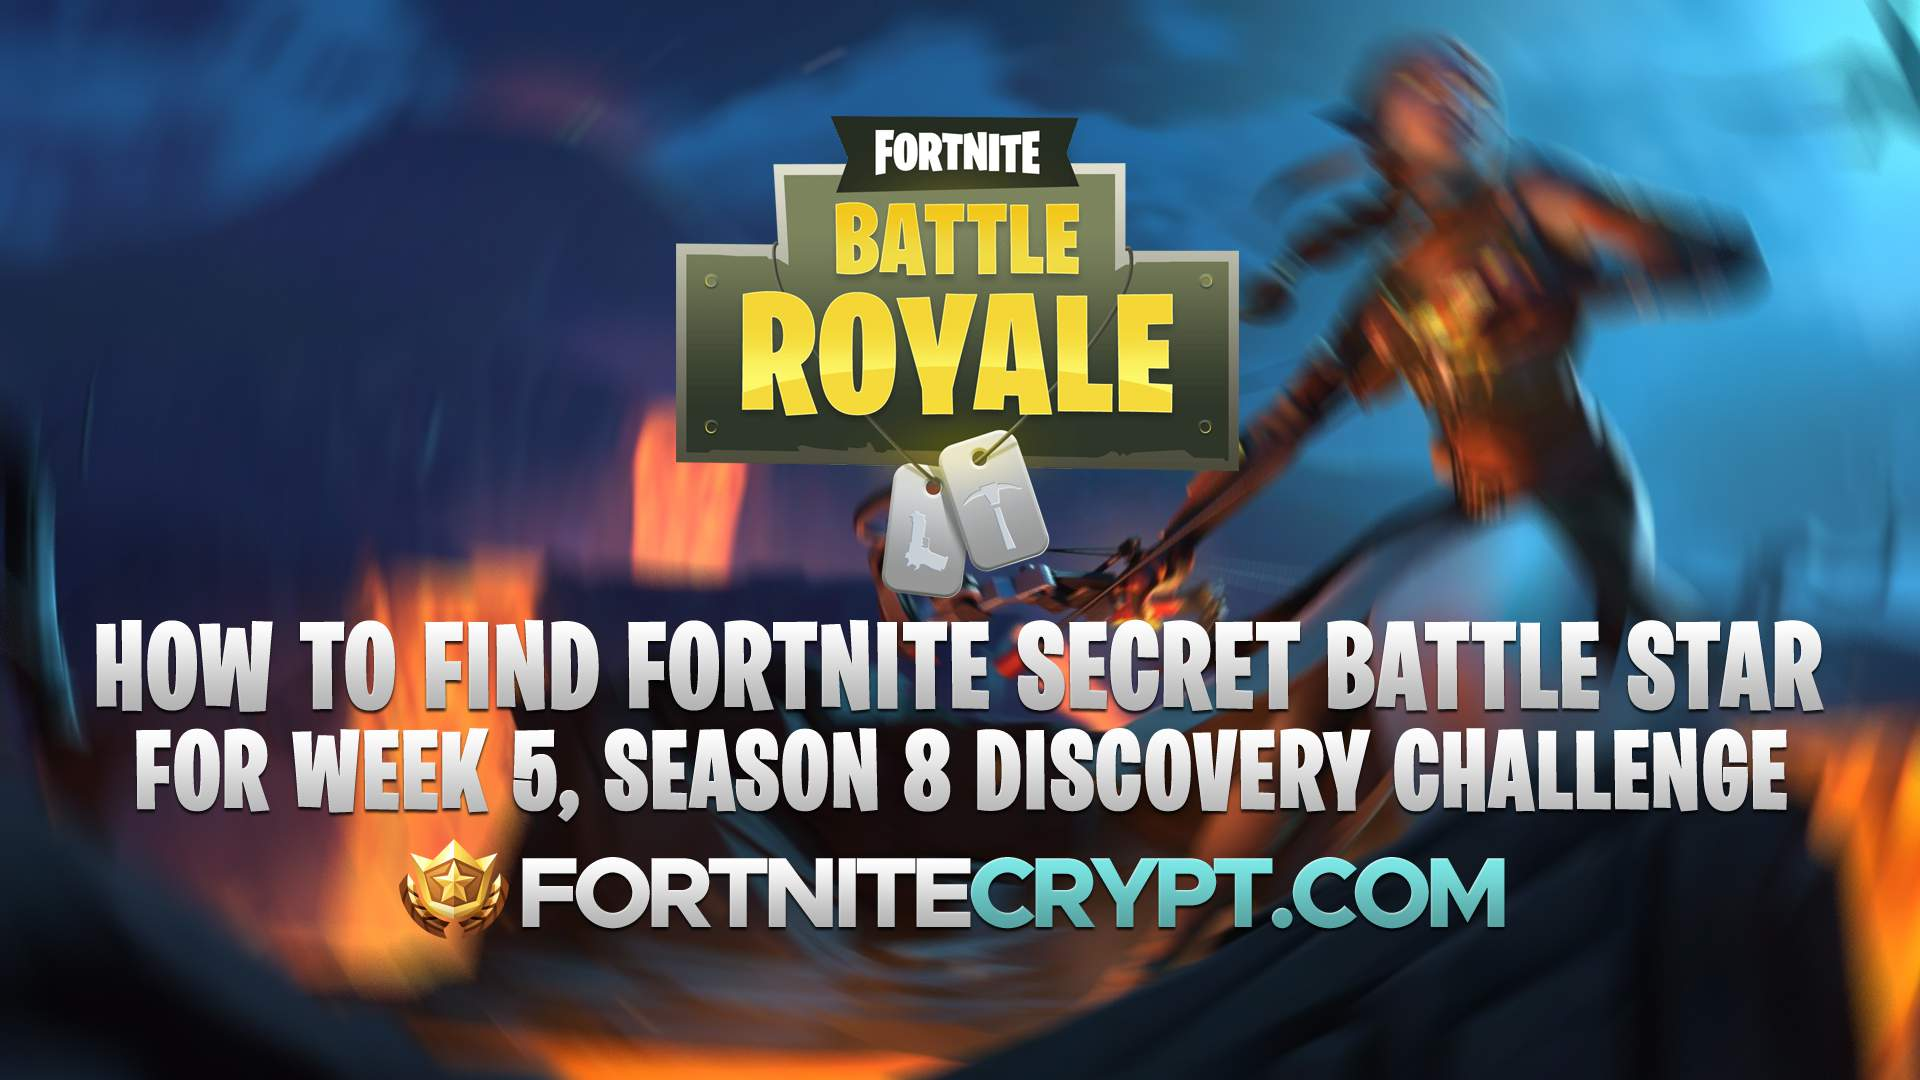 how to find fortnite secret battle star for week 5 season 8 discovery challenge - fortnite season 8 battle star